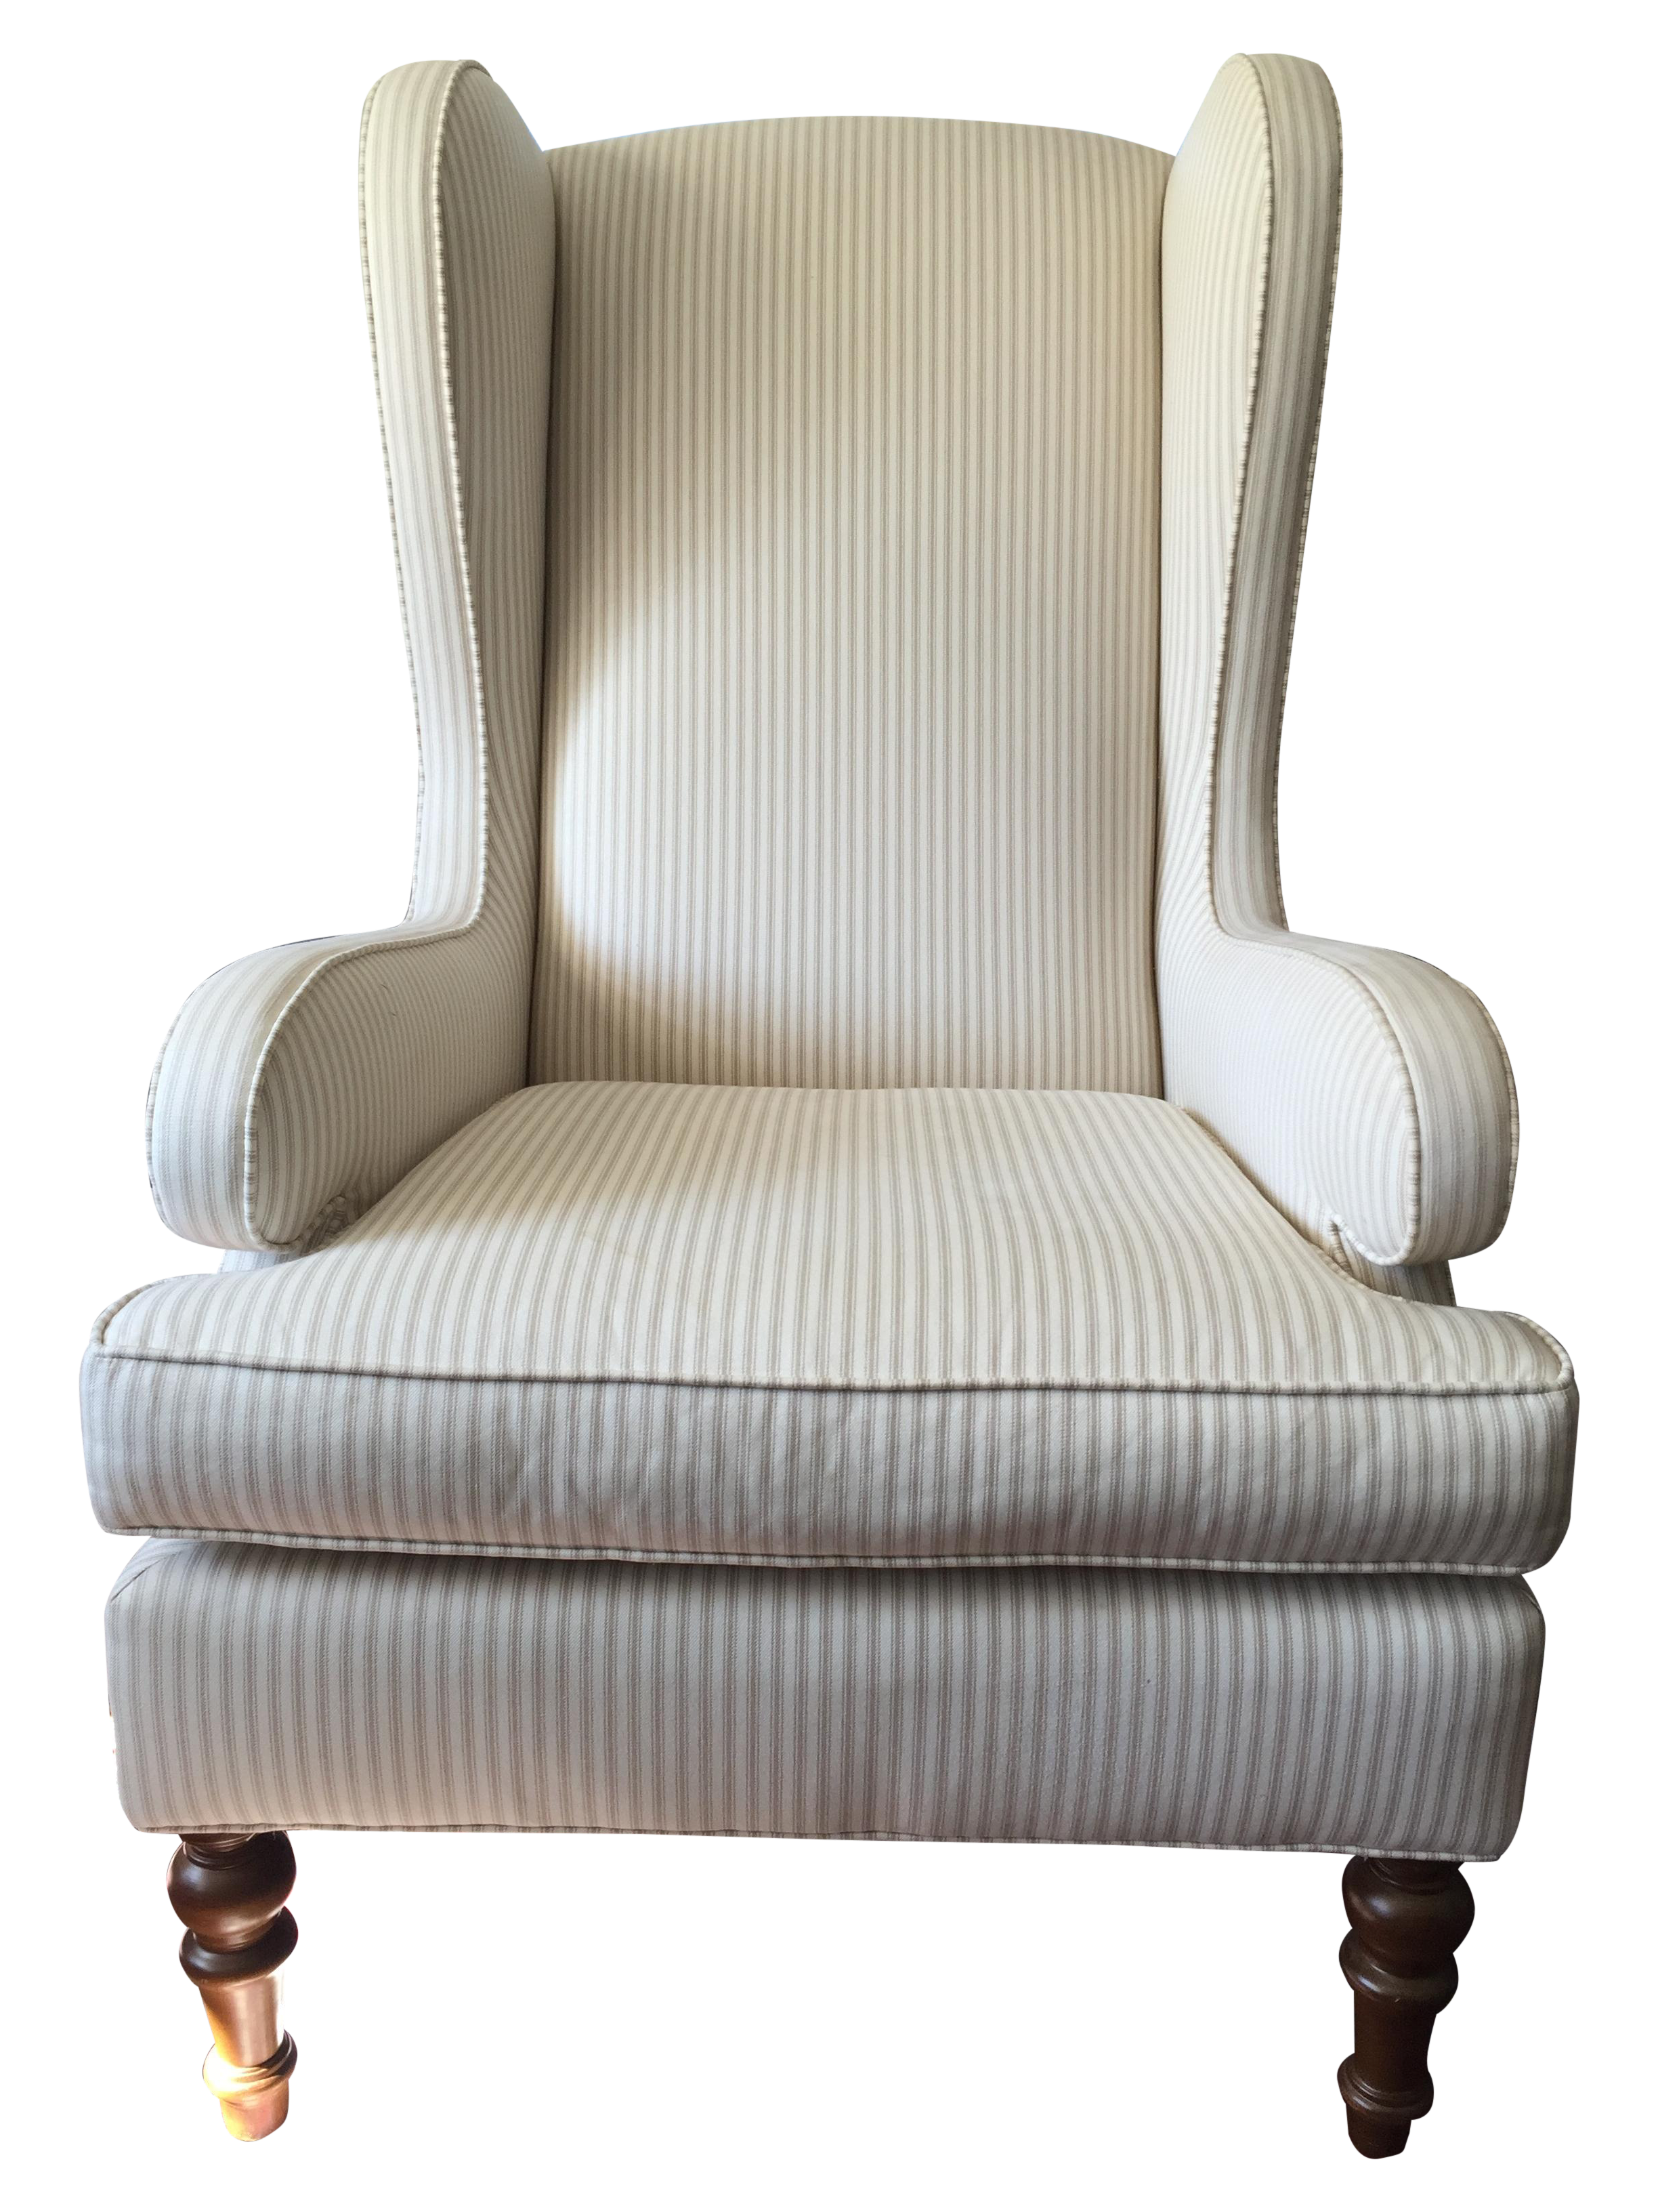 Ordinaire Mitchell Gold + Bob Williams Wingback Chair